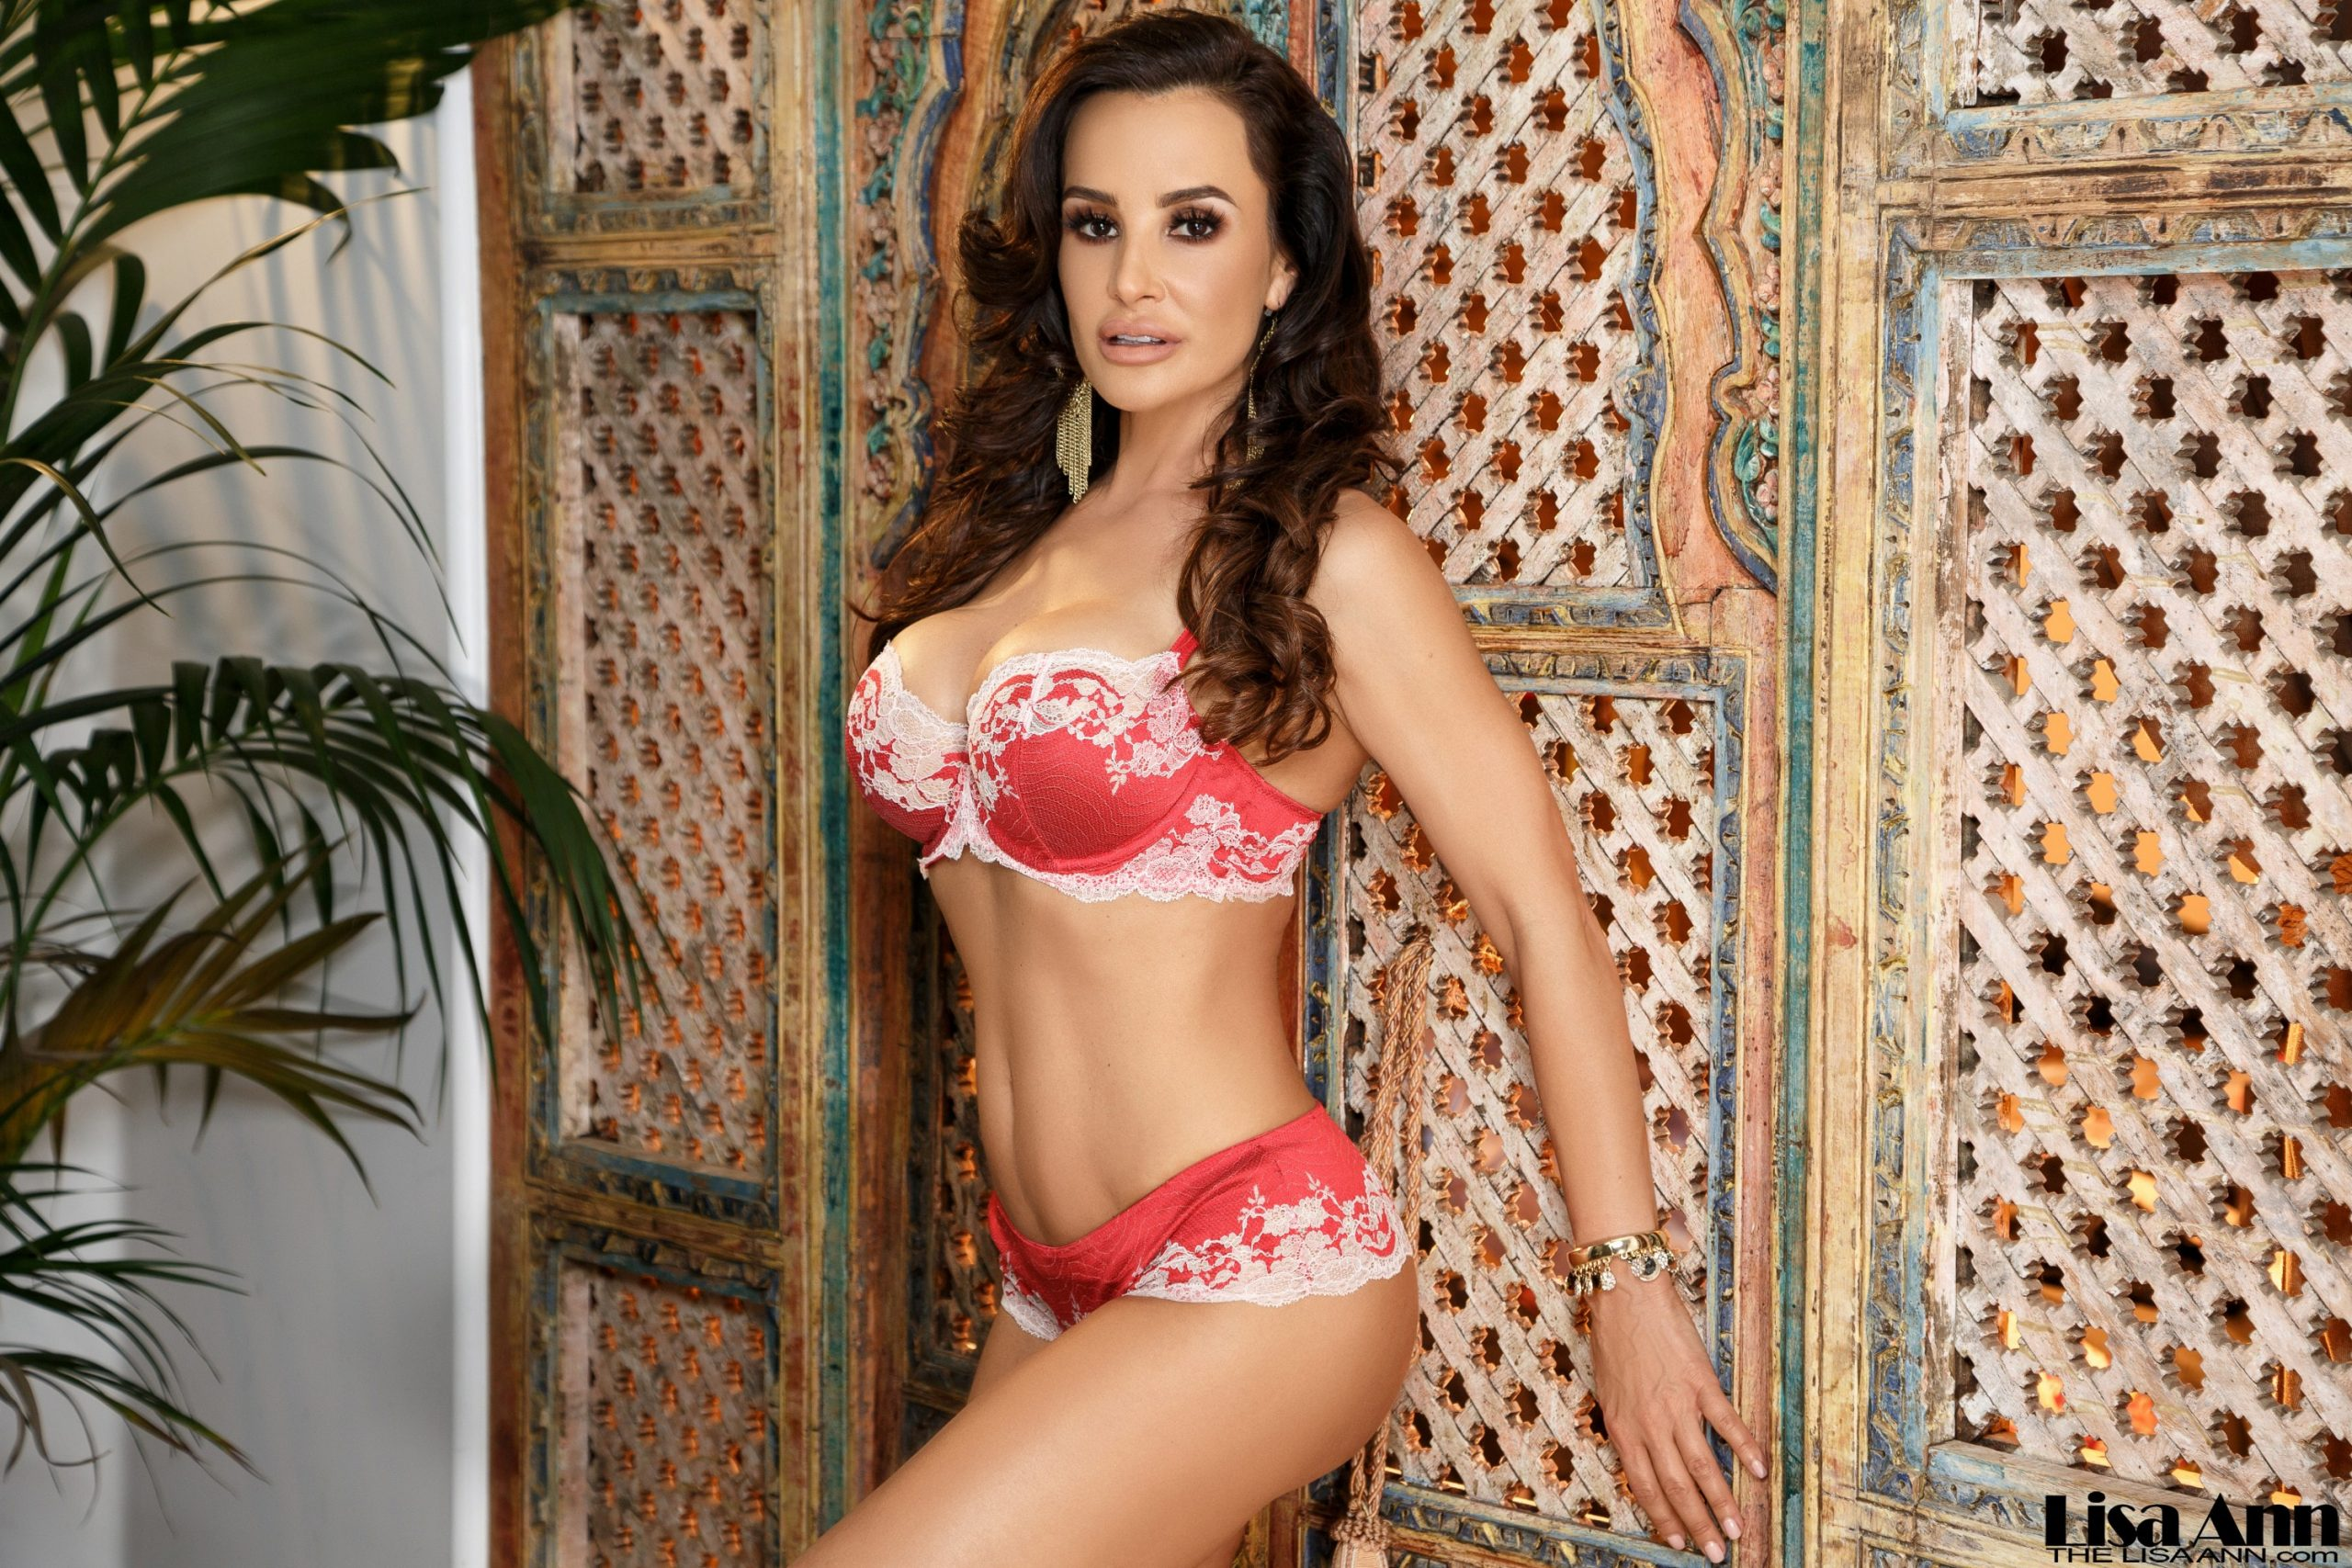 Lisa Ann Big Tits in Sexy Red Lingerie